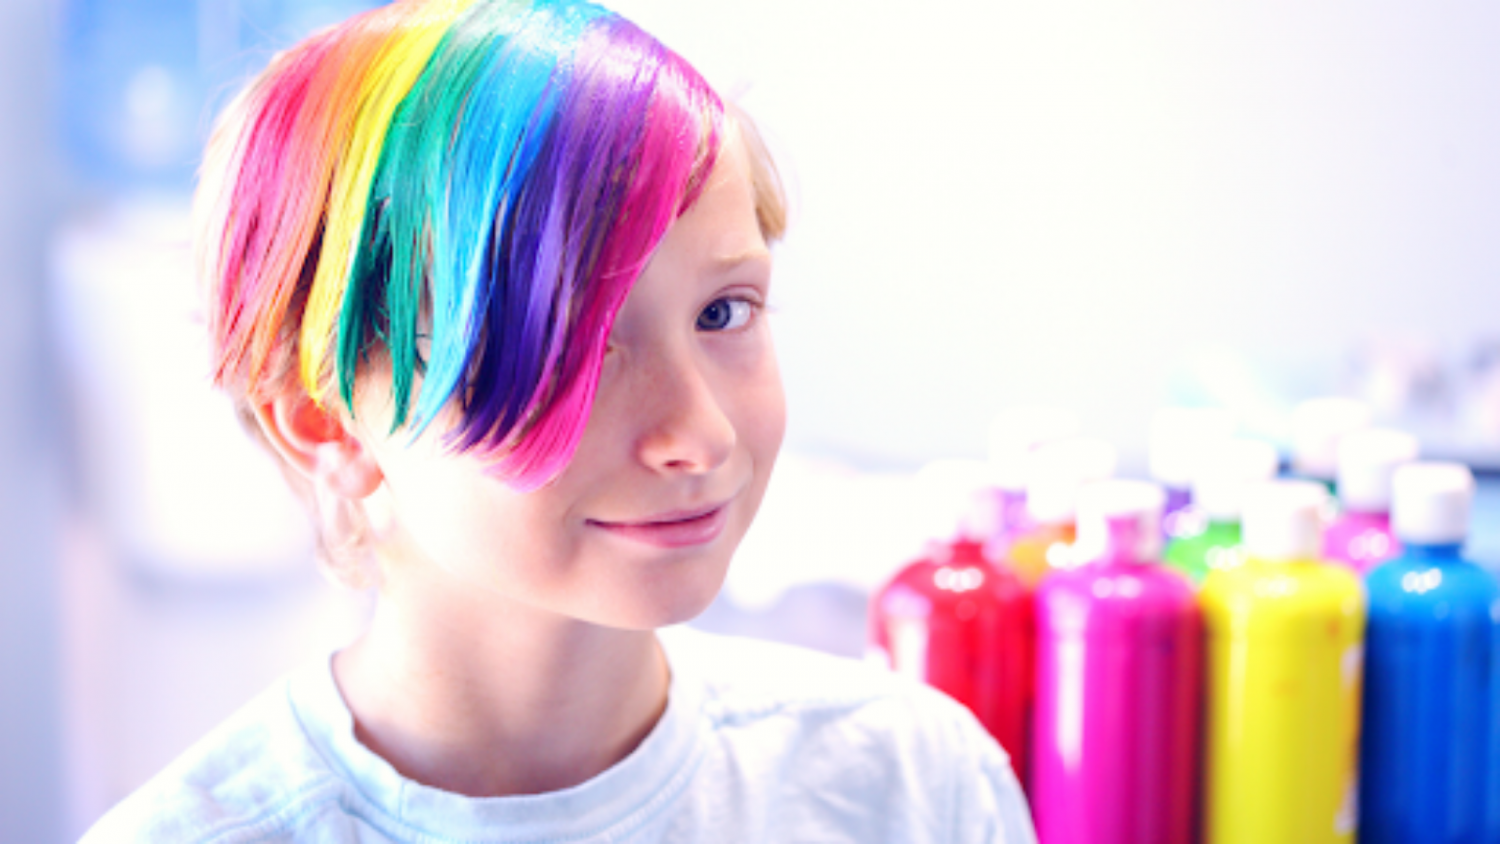 LGBTQ+ Youth with rainbow hair